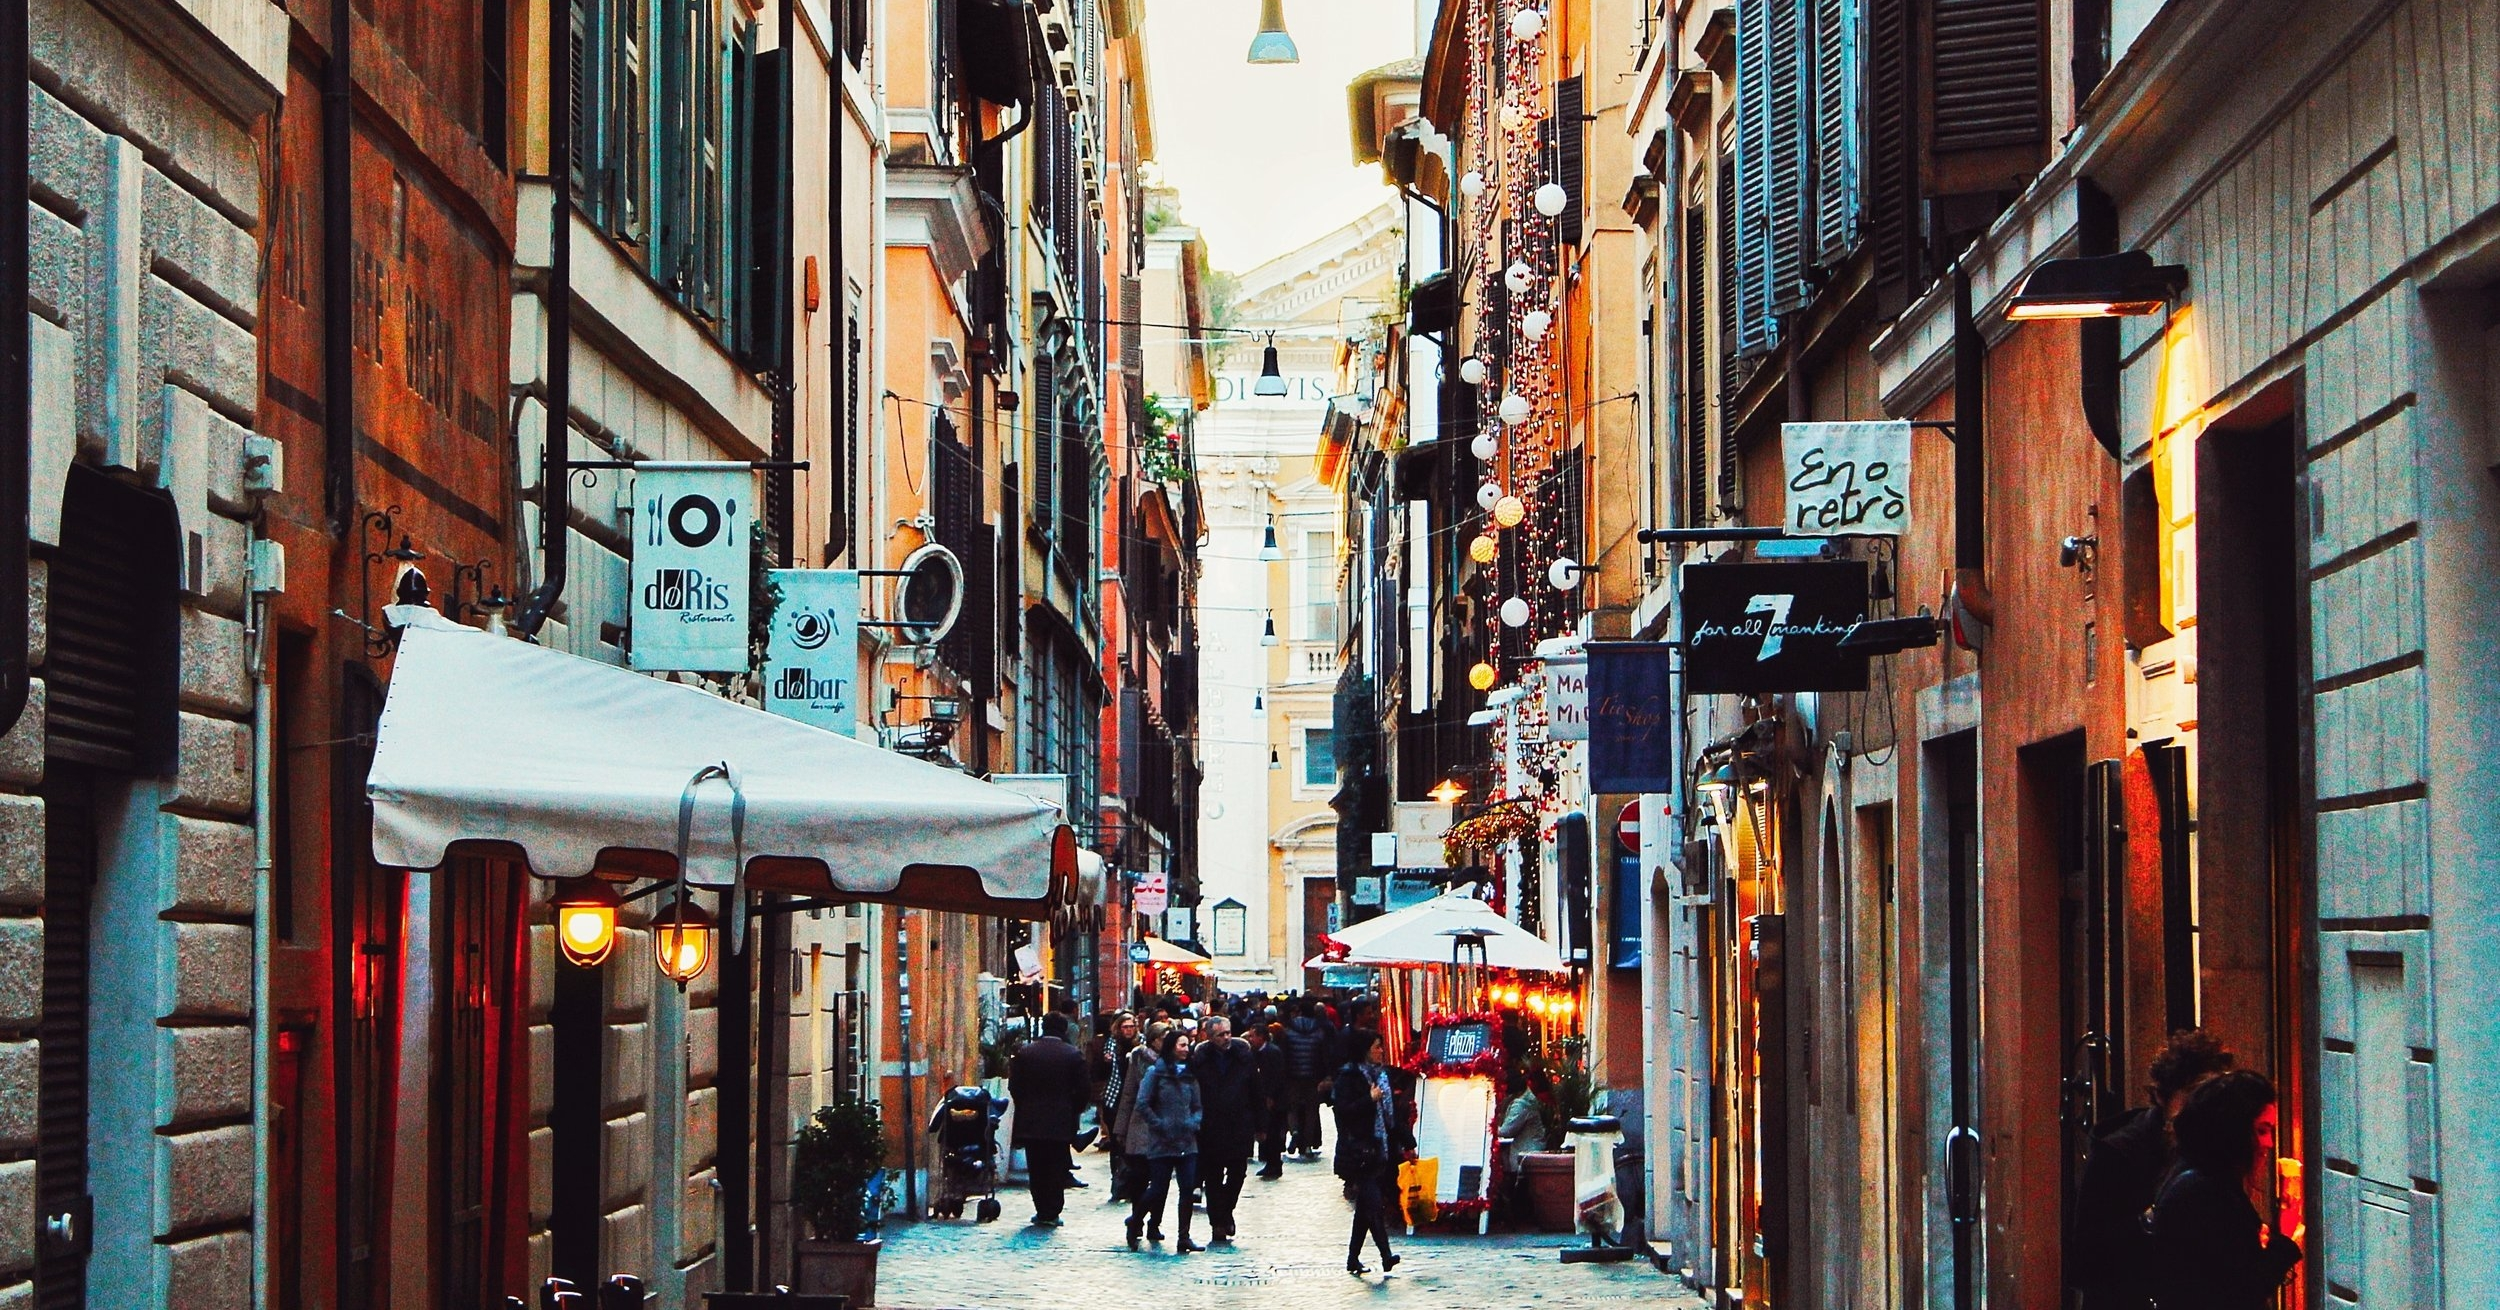 alley-architecture-buildings-397434.jpg